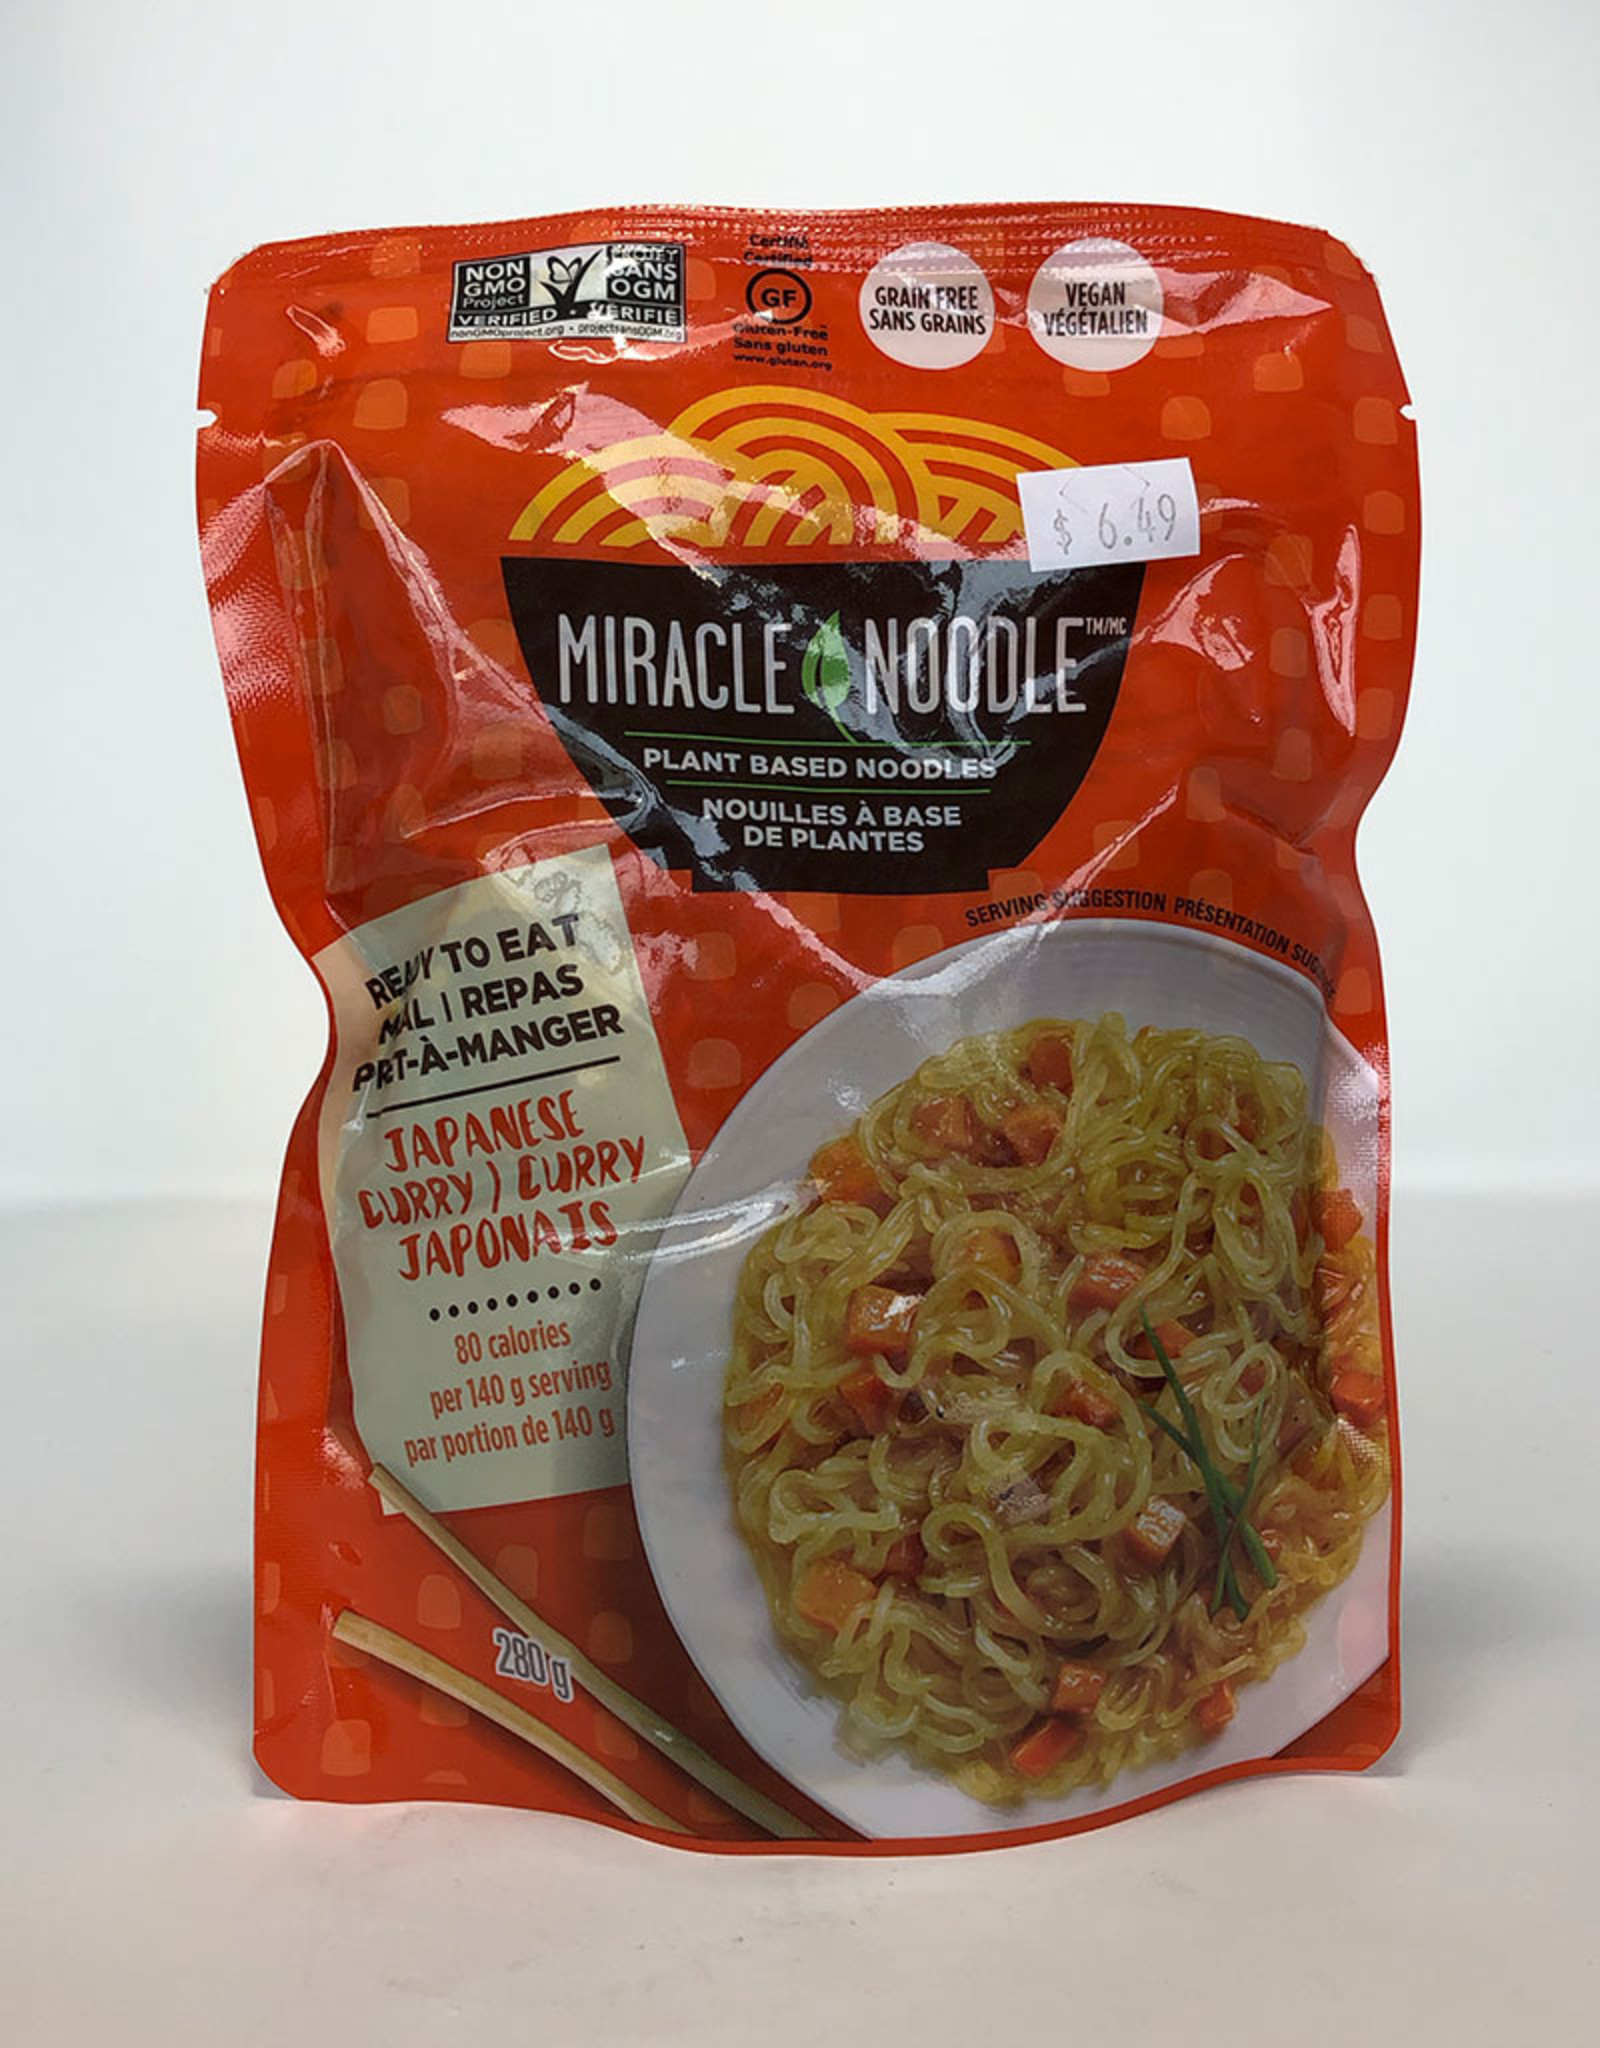 Miracle Noodle Miracle Noodle - Ready-to-Eat, Japanese Curry